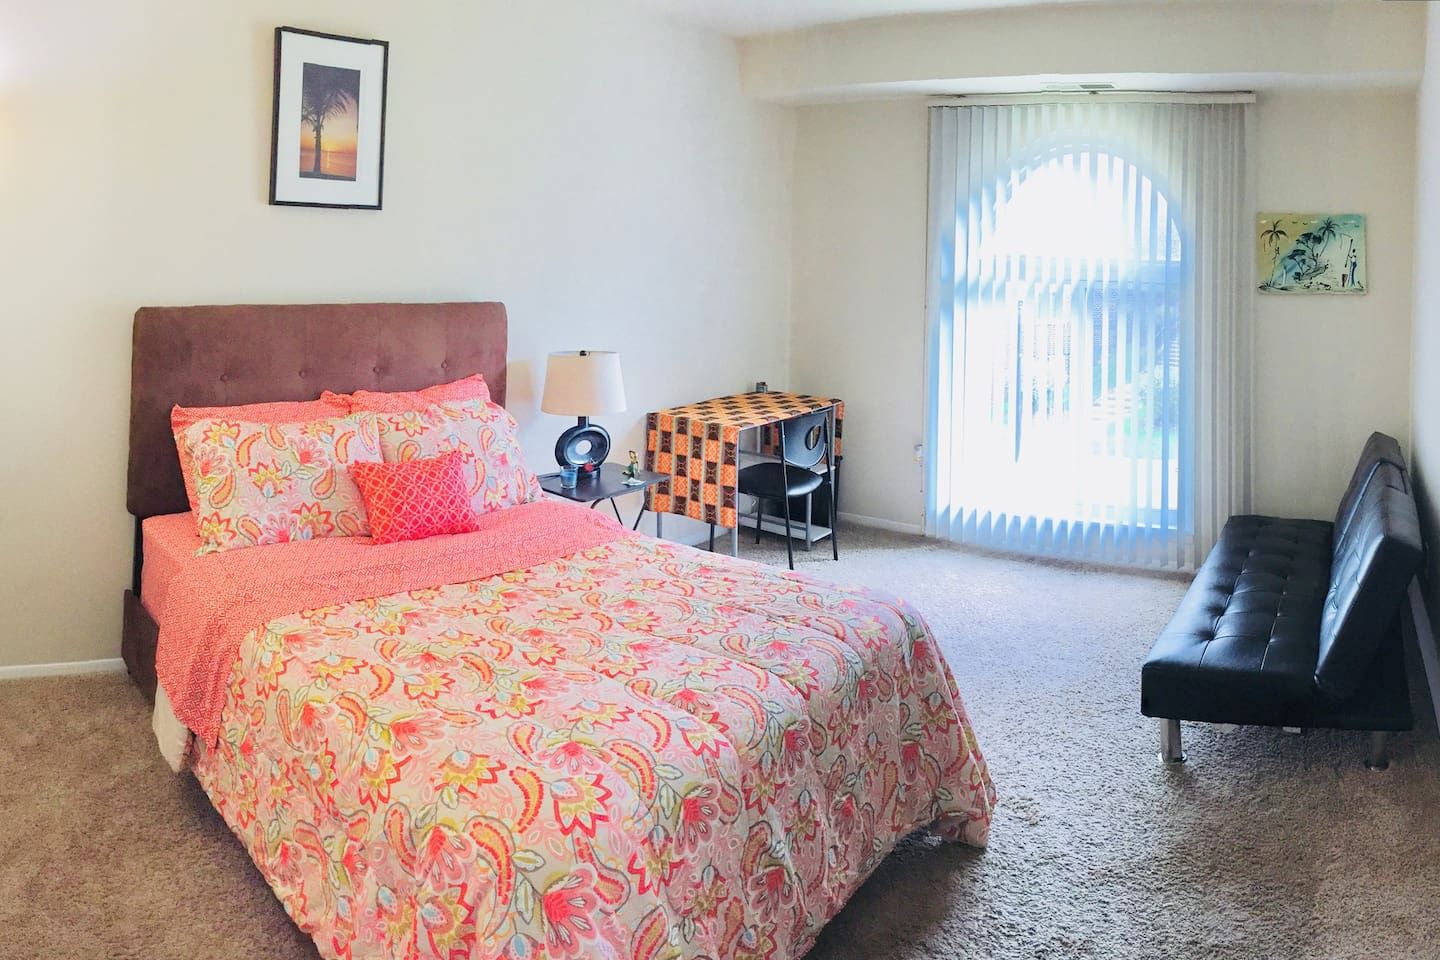 Splendid room filled with sunshine ready for you!